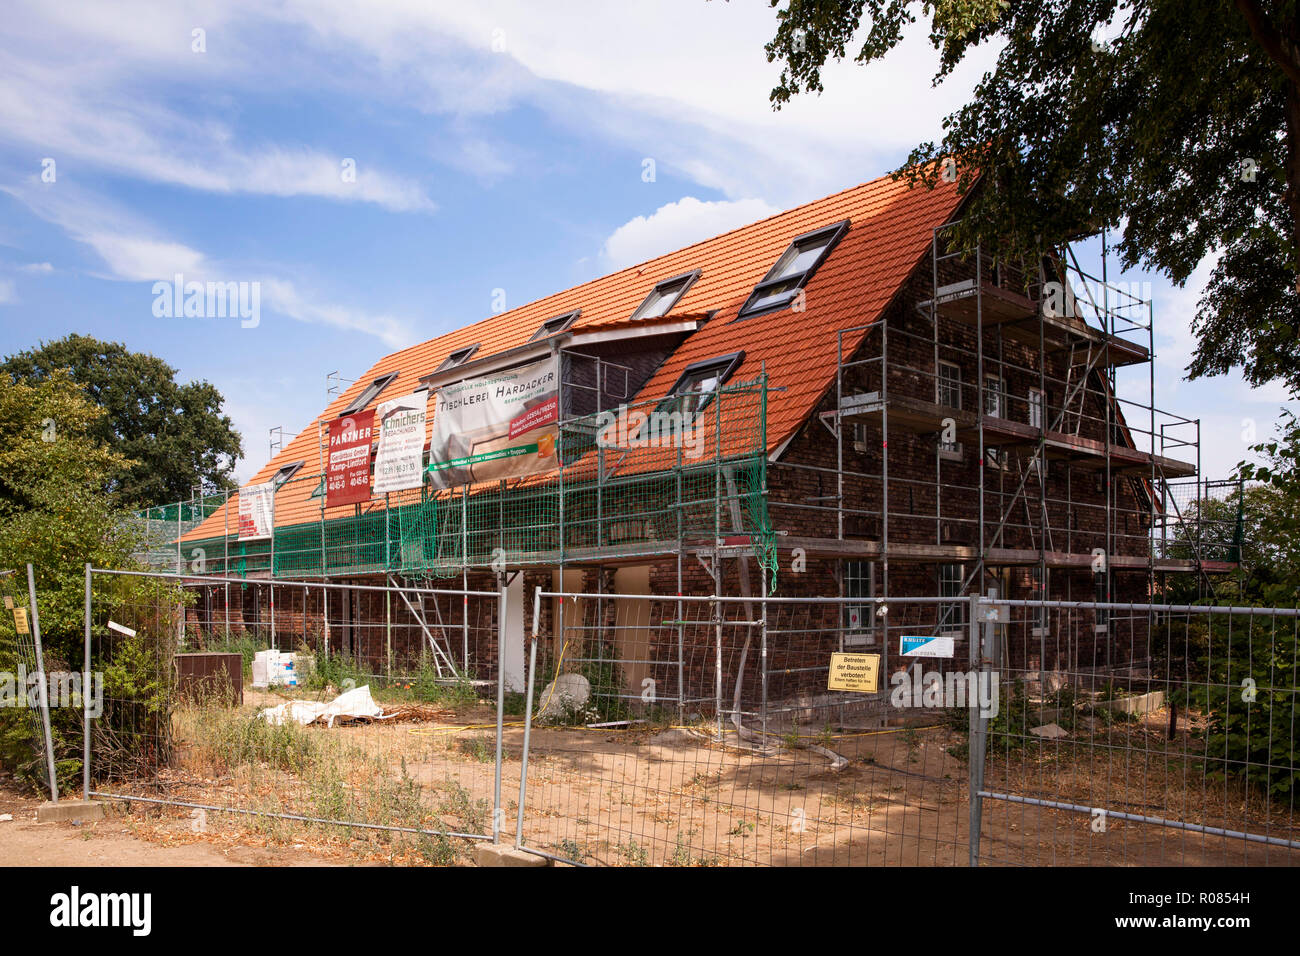 reconstruction of an old farmhouse to a residential house, Wesel, Germany.  Umbau eines alten Bauernhauses zu einem Wohnhaus, Wesel, Deutschland. - Stock Image